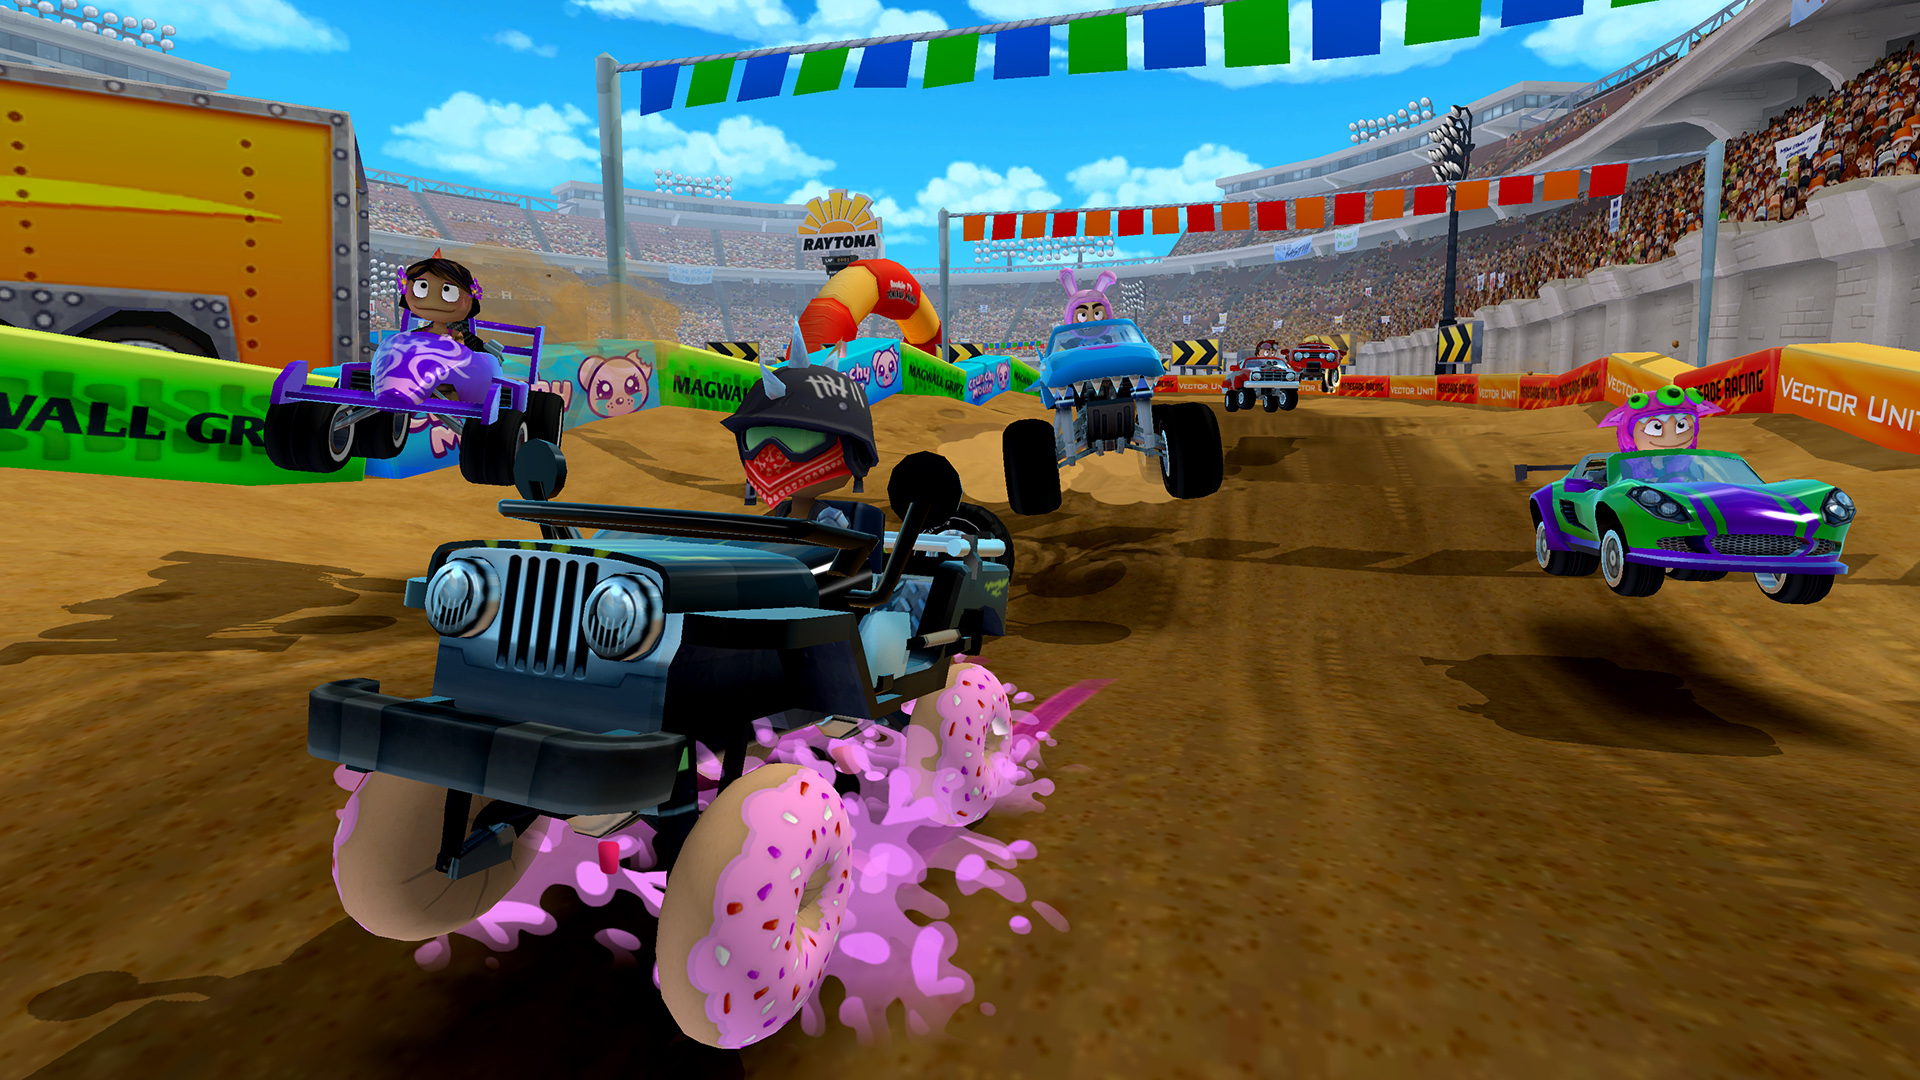 """Raytona Stadium is one of the new tracks in Beach Buggy Racing 2. Here you can also see the squishy goodness of """"Donut Tires"""", one of the new powerups."""